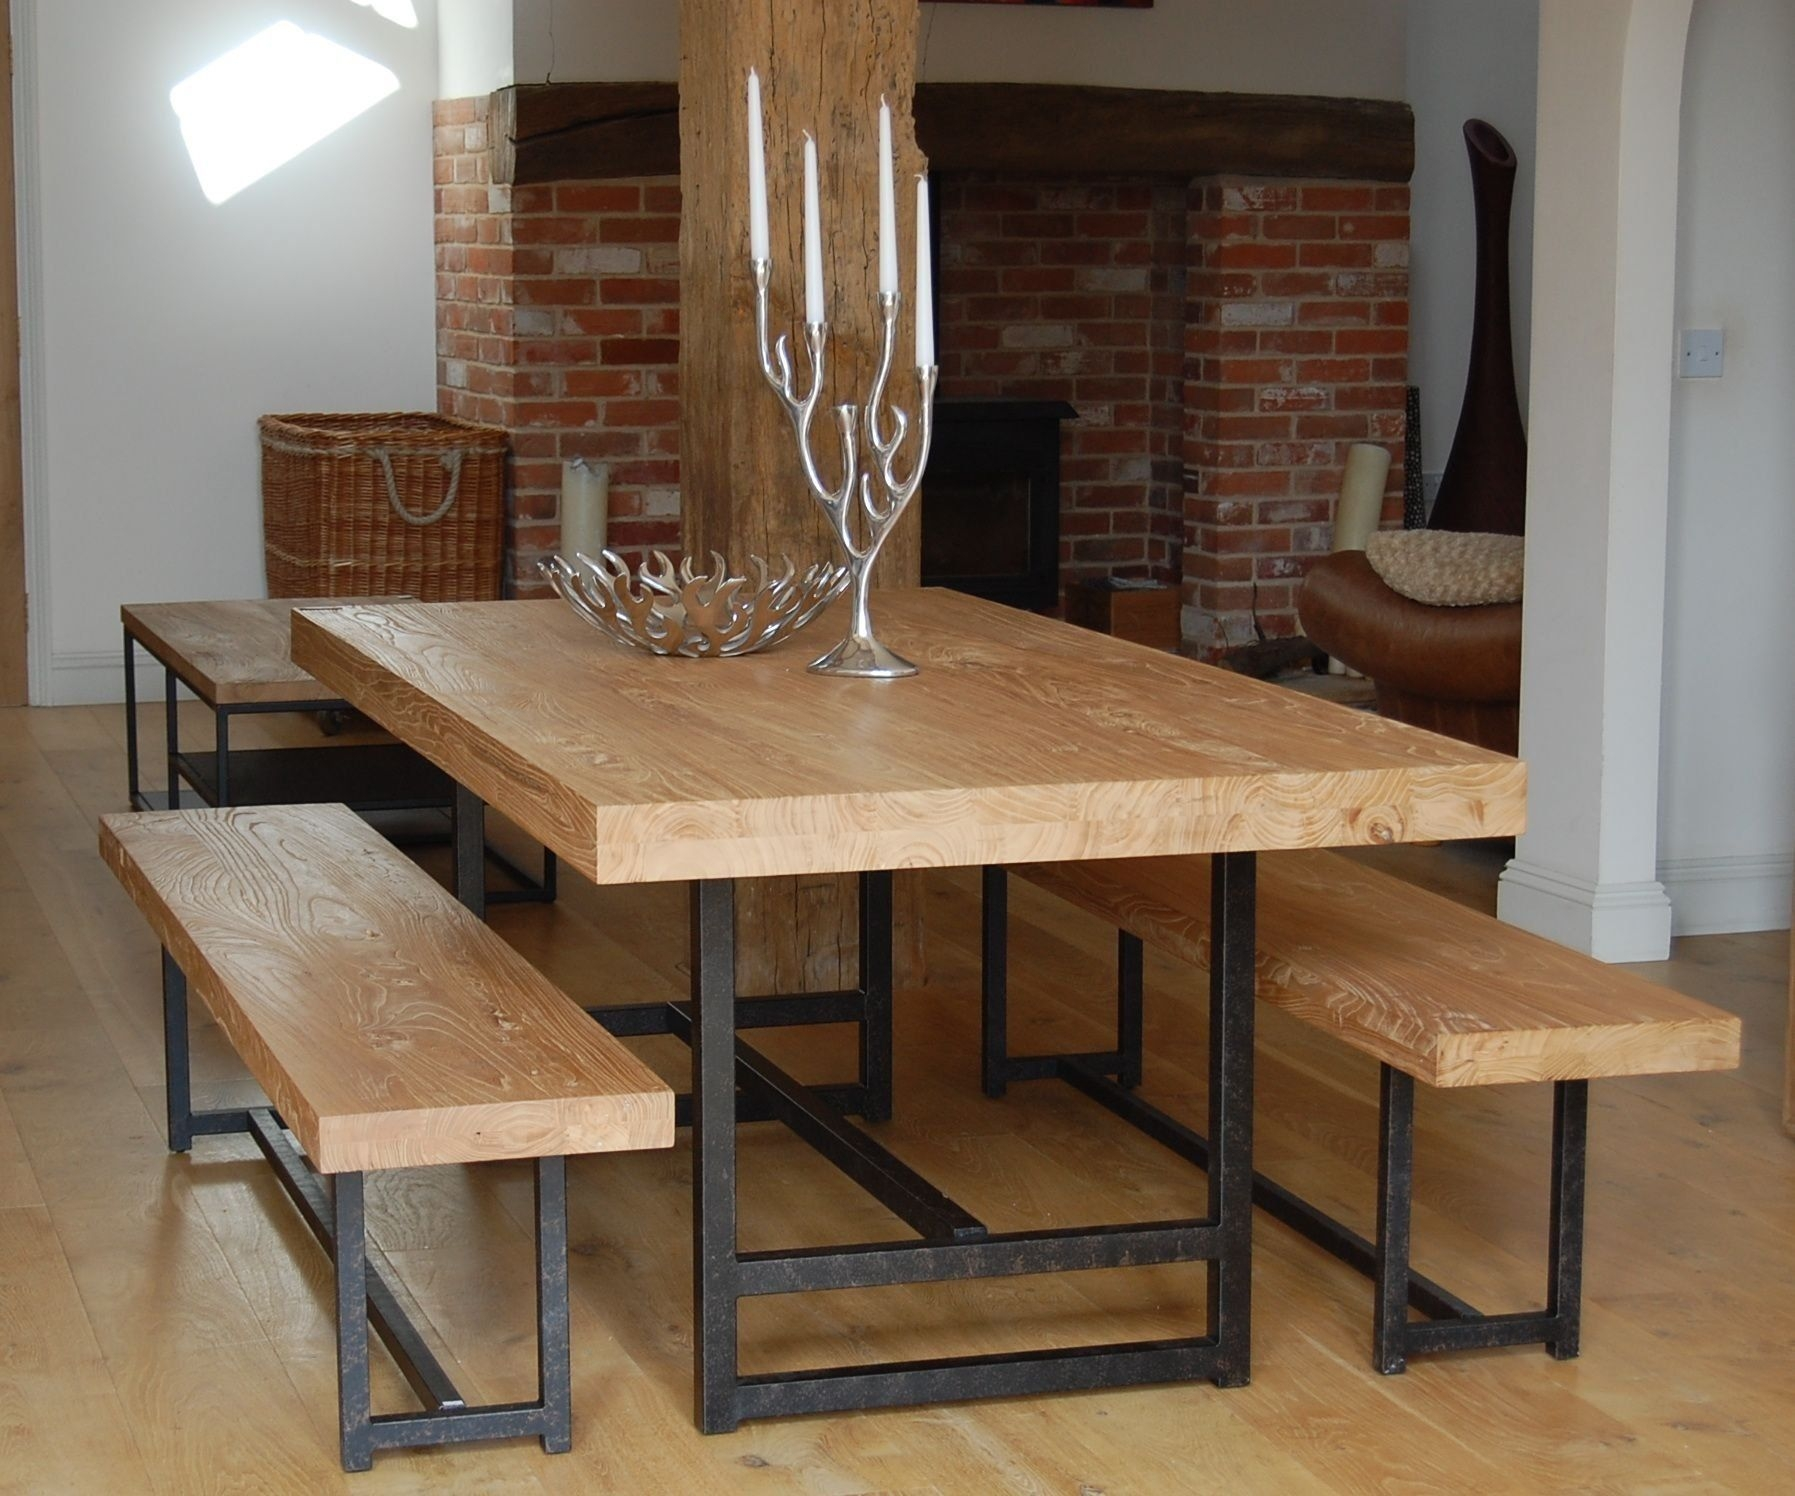 Modern Bench Style Dining Table Set Ideas | HomesFeed  sc 1 st  Visual Hunt & Dining Table With Bench - Visual Hunt